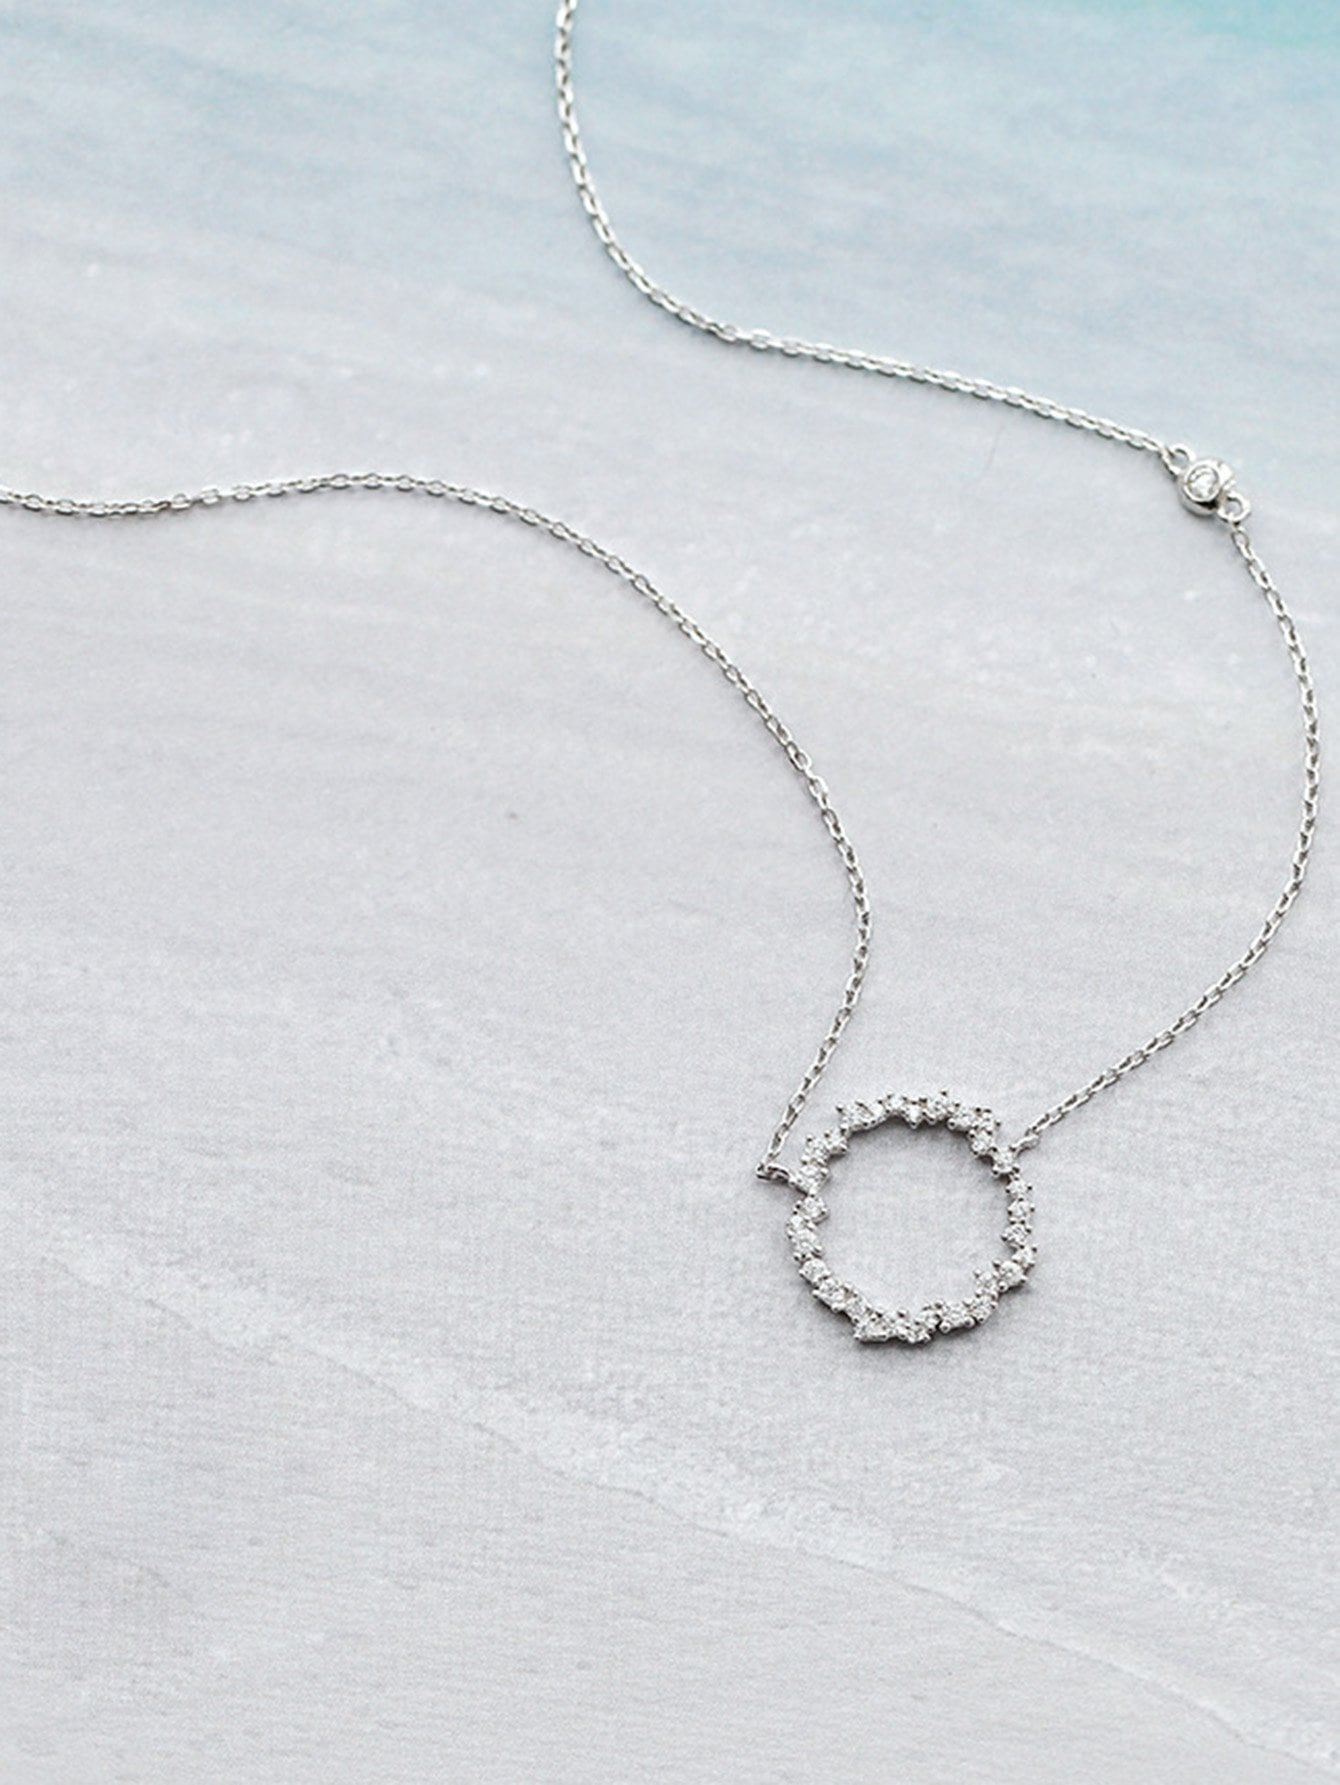 Rhinestone Decorated Ring Pendant Chain Necklace